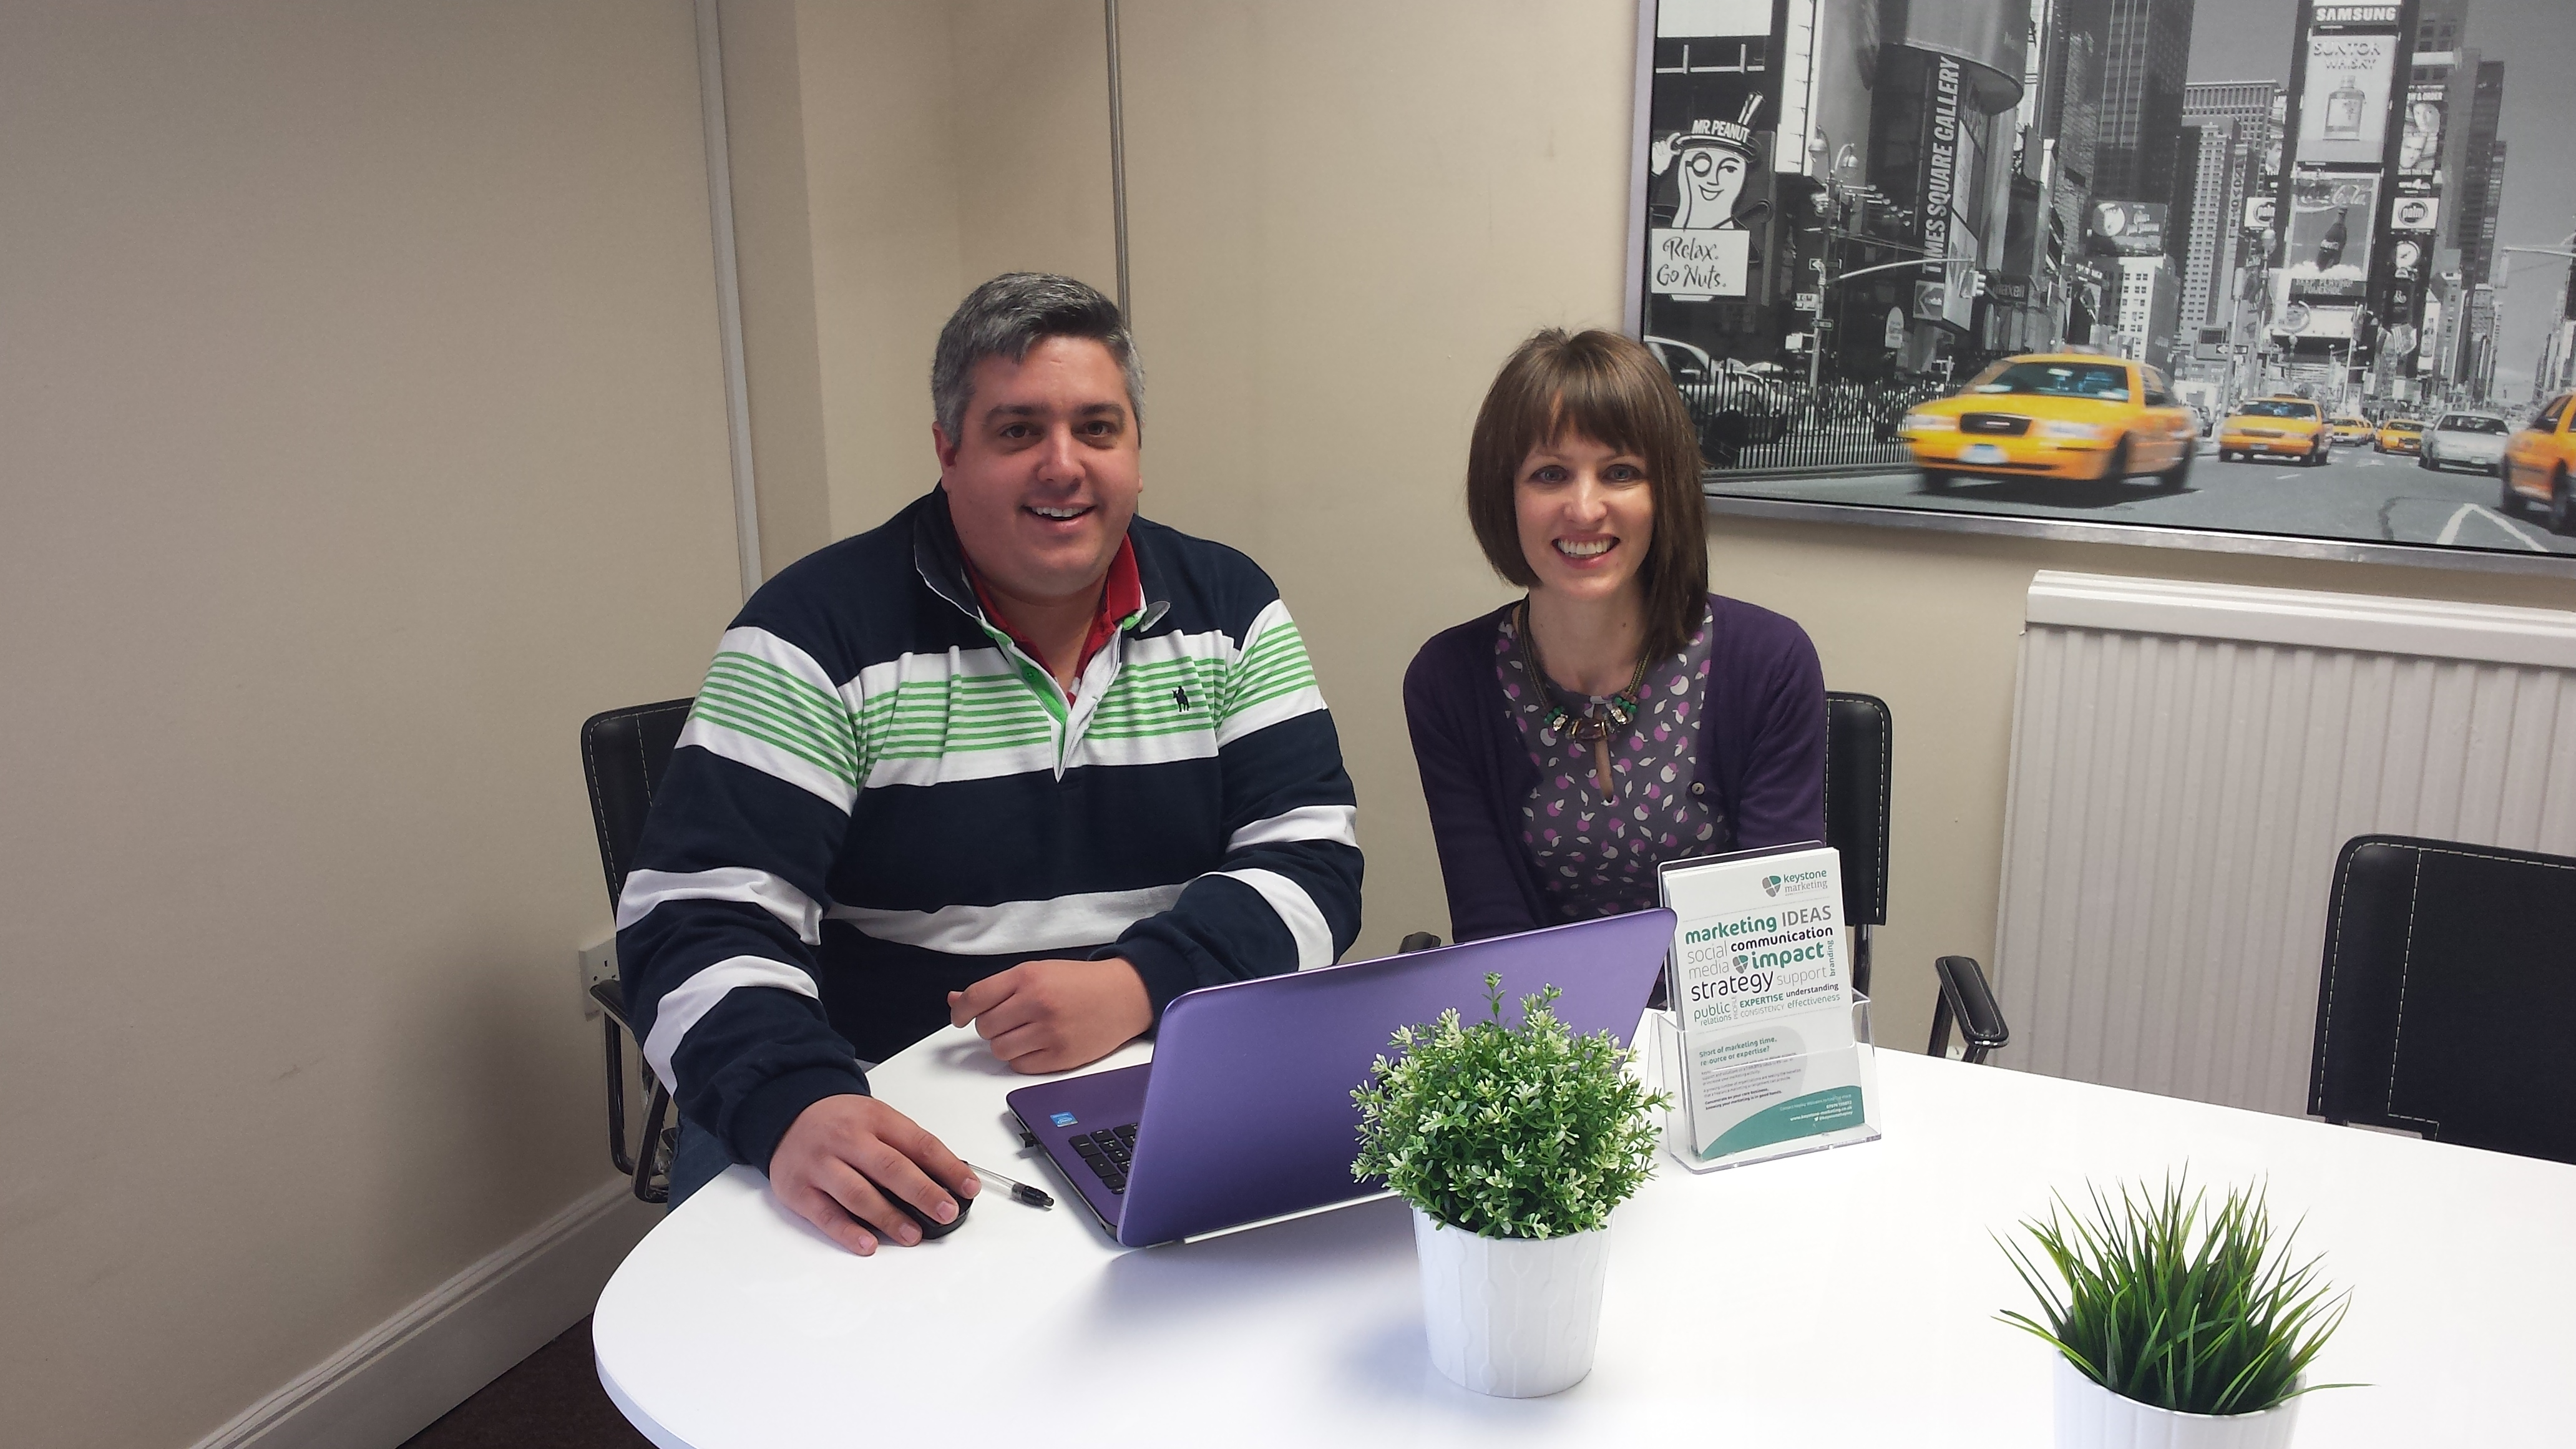 Cameron Paul of Spinifex Accounting and Hayley Williams of Keystone Marketing at The Workstation, St Neots